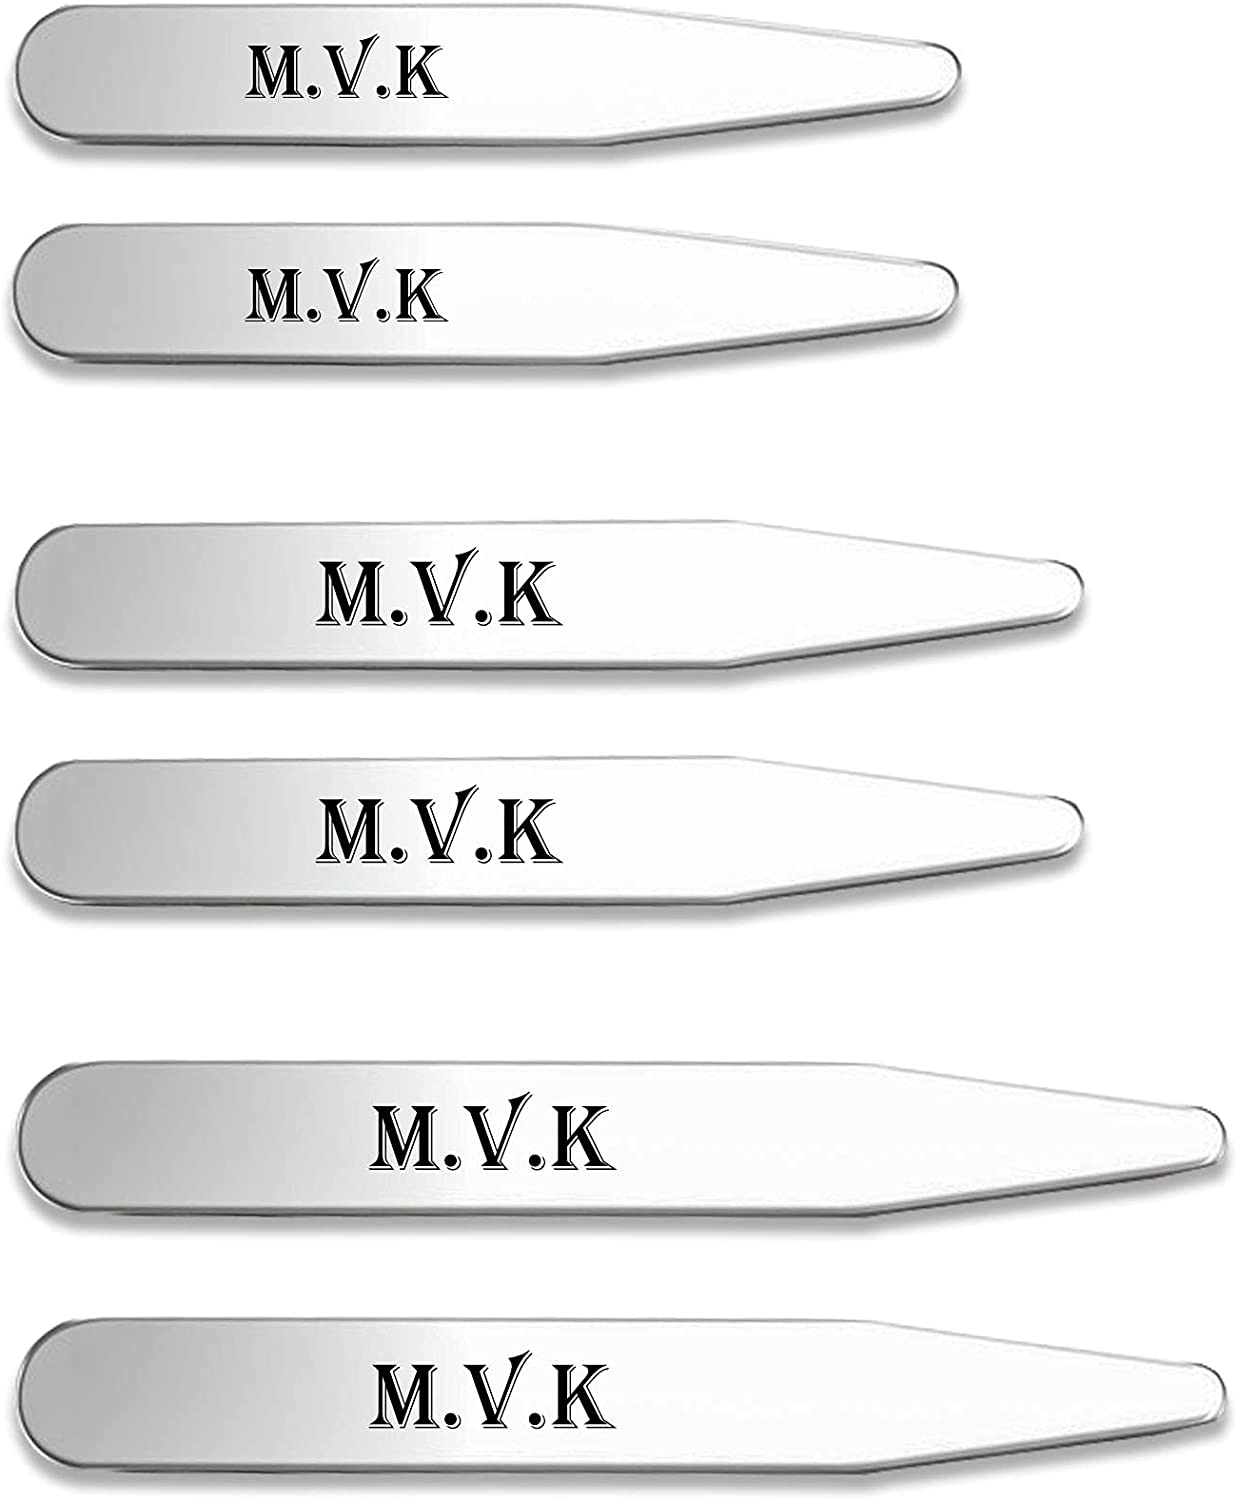 Jovivi Free Engraving- Personalized 6pcs Stainless Steel Collar Stays for Mens Dress Shirt,3 Sizes Set (2.2